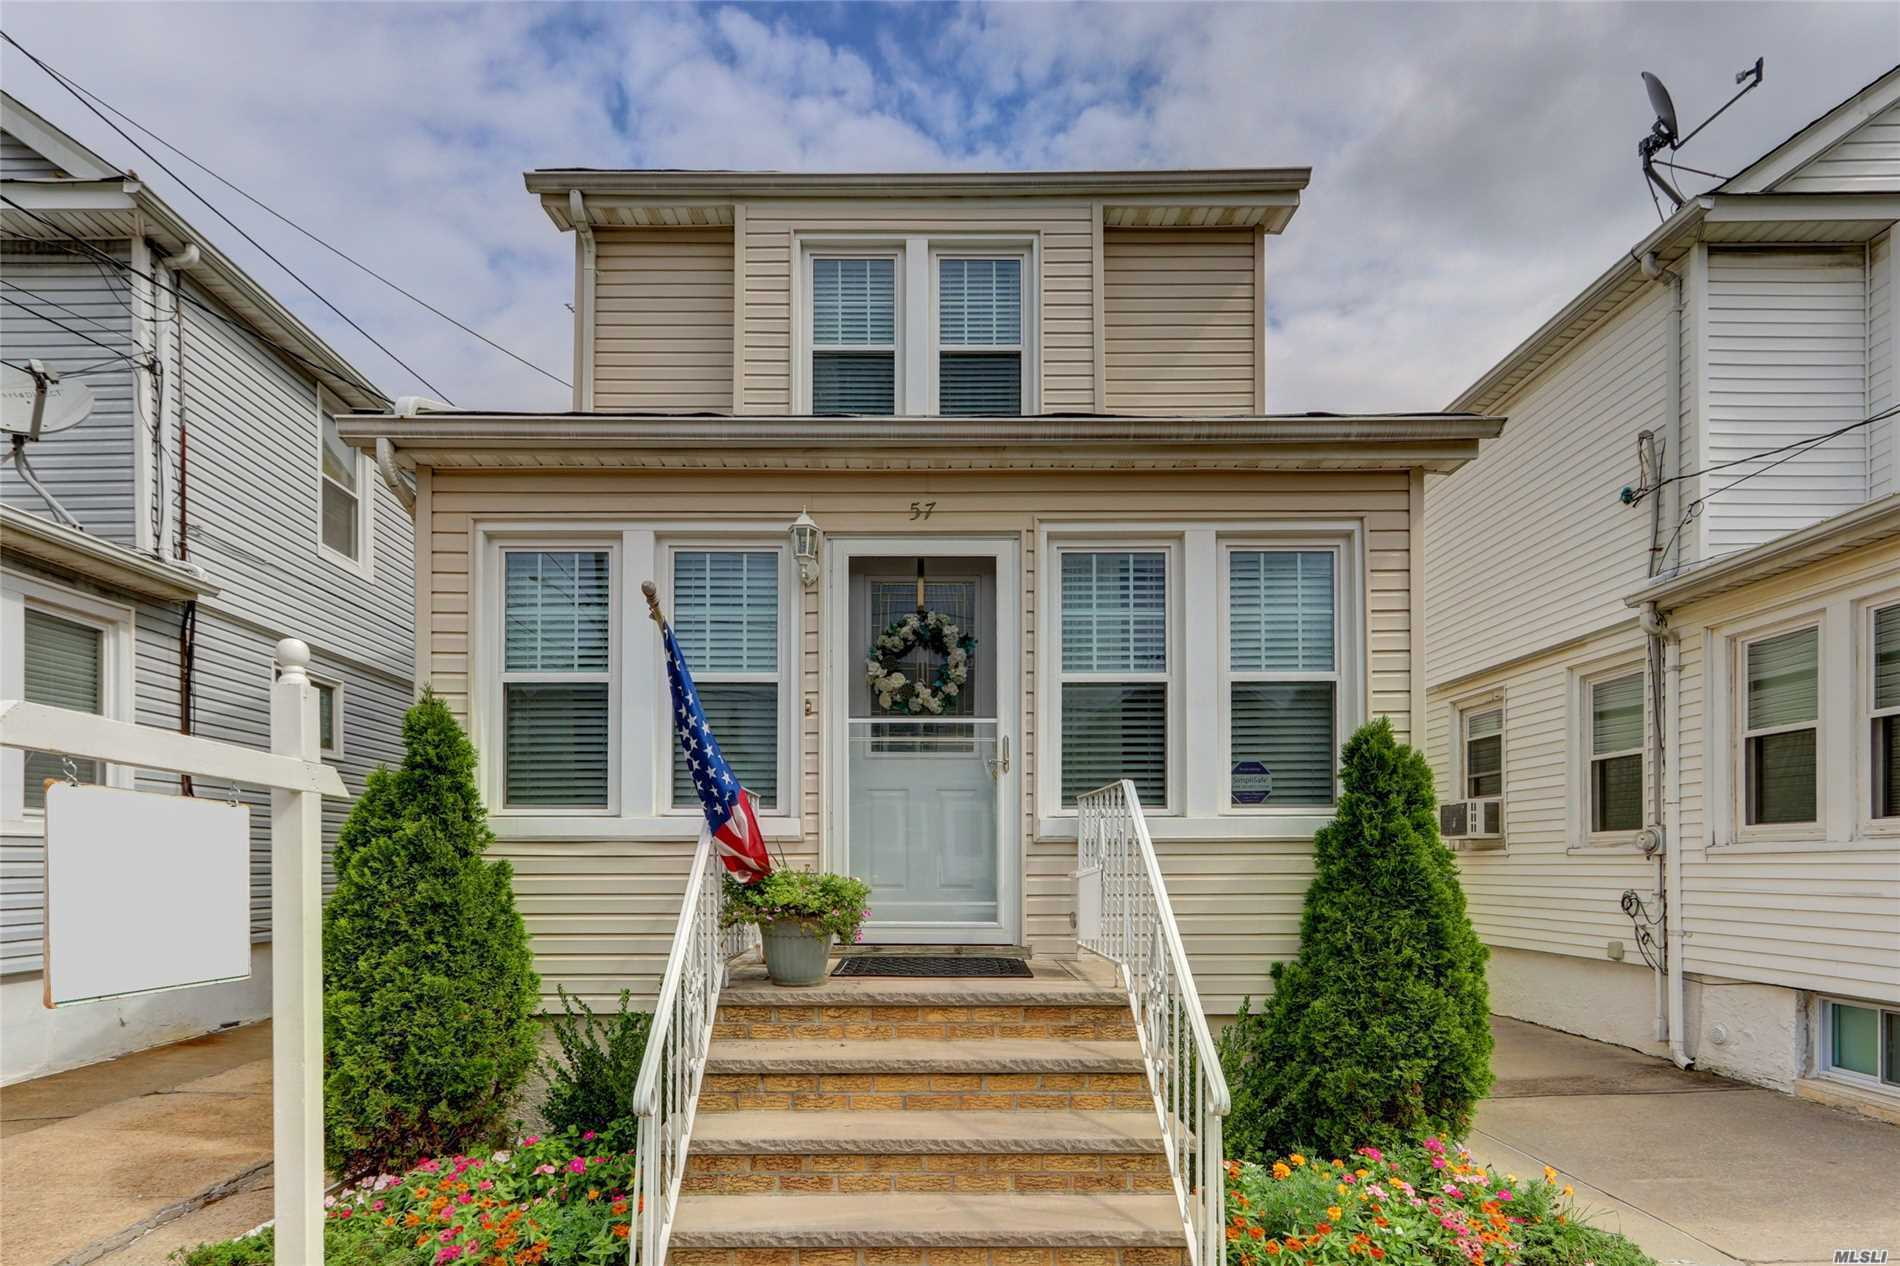 Tastefully Updated And Beautifully Maintained 3Br, 1.5 Ba Colonial. Features Formal Living And Dining Rooms, Eik With Gas Cooking, Powder Room On First Floor, Renovated Bathrooms, Lovely Garden With Perennial Plantings. Updated Heating Unit, Windows And Siding. Walking Distance To Transportation And Stores, Easy Access To Highways And Floral Park-Bellerose Schools!